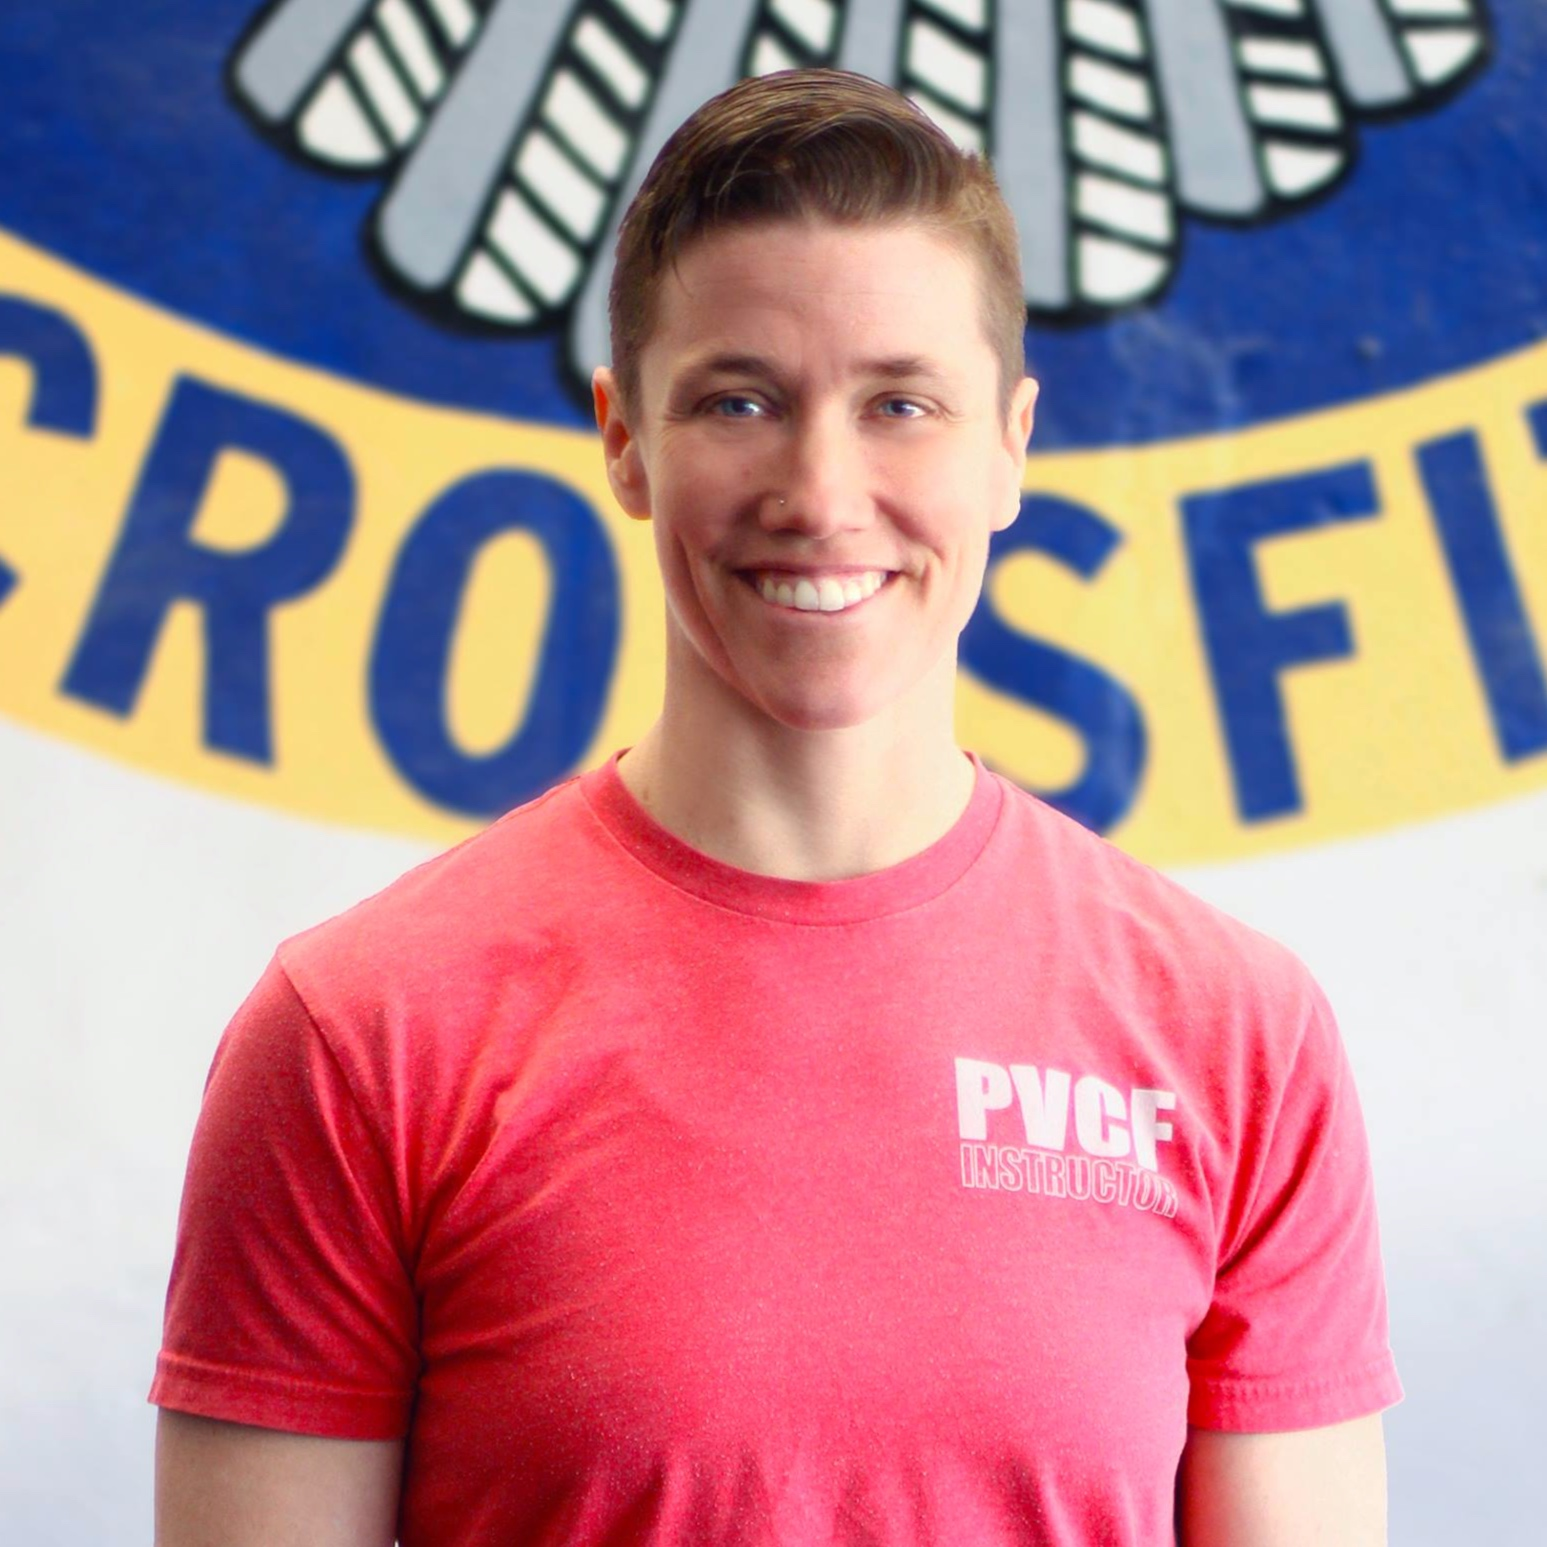 Ayn is the Director of Training at PVCF and has been a leader on our Coaching Team for over 6 years. She is a CrossFit Level 1 and Level 2 Trainer, and is also a CrossFit gymnastics coach, OPEX certified, and a certified Bikram yoga instructor. Ayn is a four-time North East CrossFit Games qualifier. Naturally athletic, she played division one soccer at the University of Oklahoma where she earned a BFA in Fine Art. Ayn is as accomplished in the arts as she is in athletics. She earned her MFA in painting from Colorado State in 2005 and it was there in 2008 that she started working out at a small CrossFit affiliate. It changed her life. For Ayn, training is more about self-actualization than fitness. She enjoys coaching because it gives her the chance to play a positive role in peoples lives. She is currently the Director of Programming and in charge of PVCF's Masters Program and can often be found coaching athletes in Northampton.